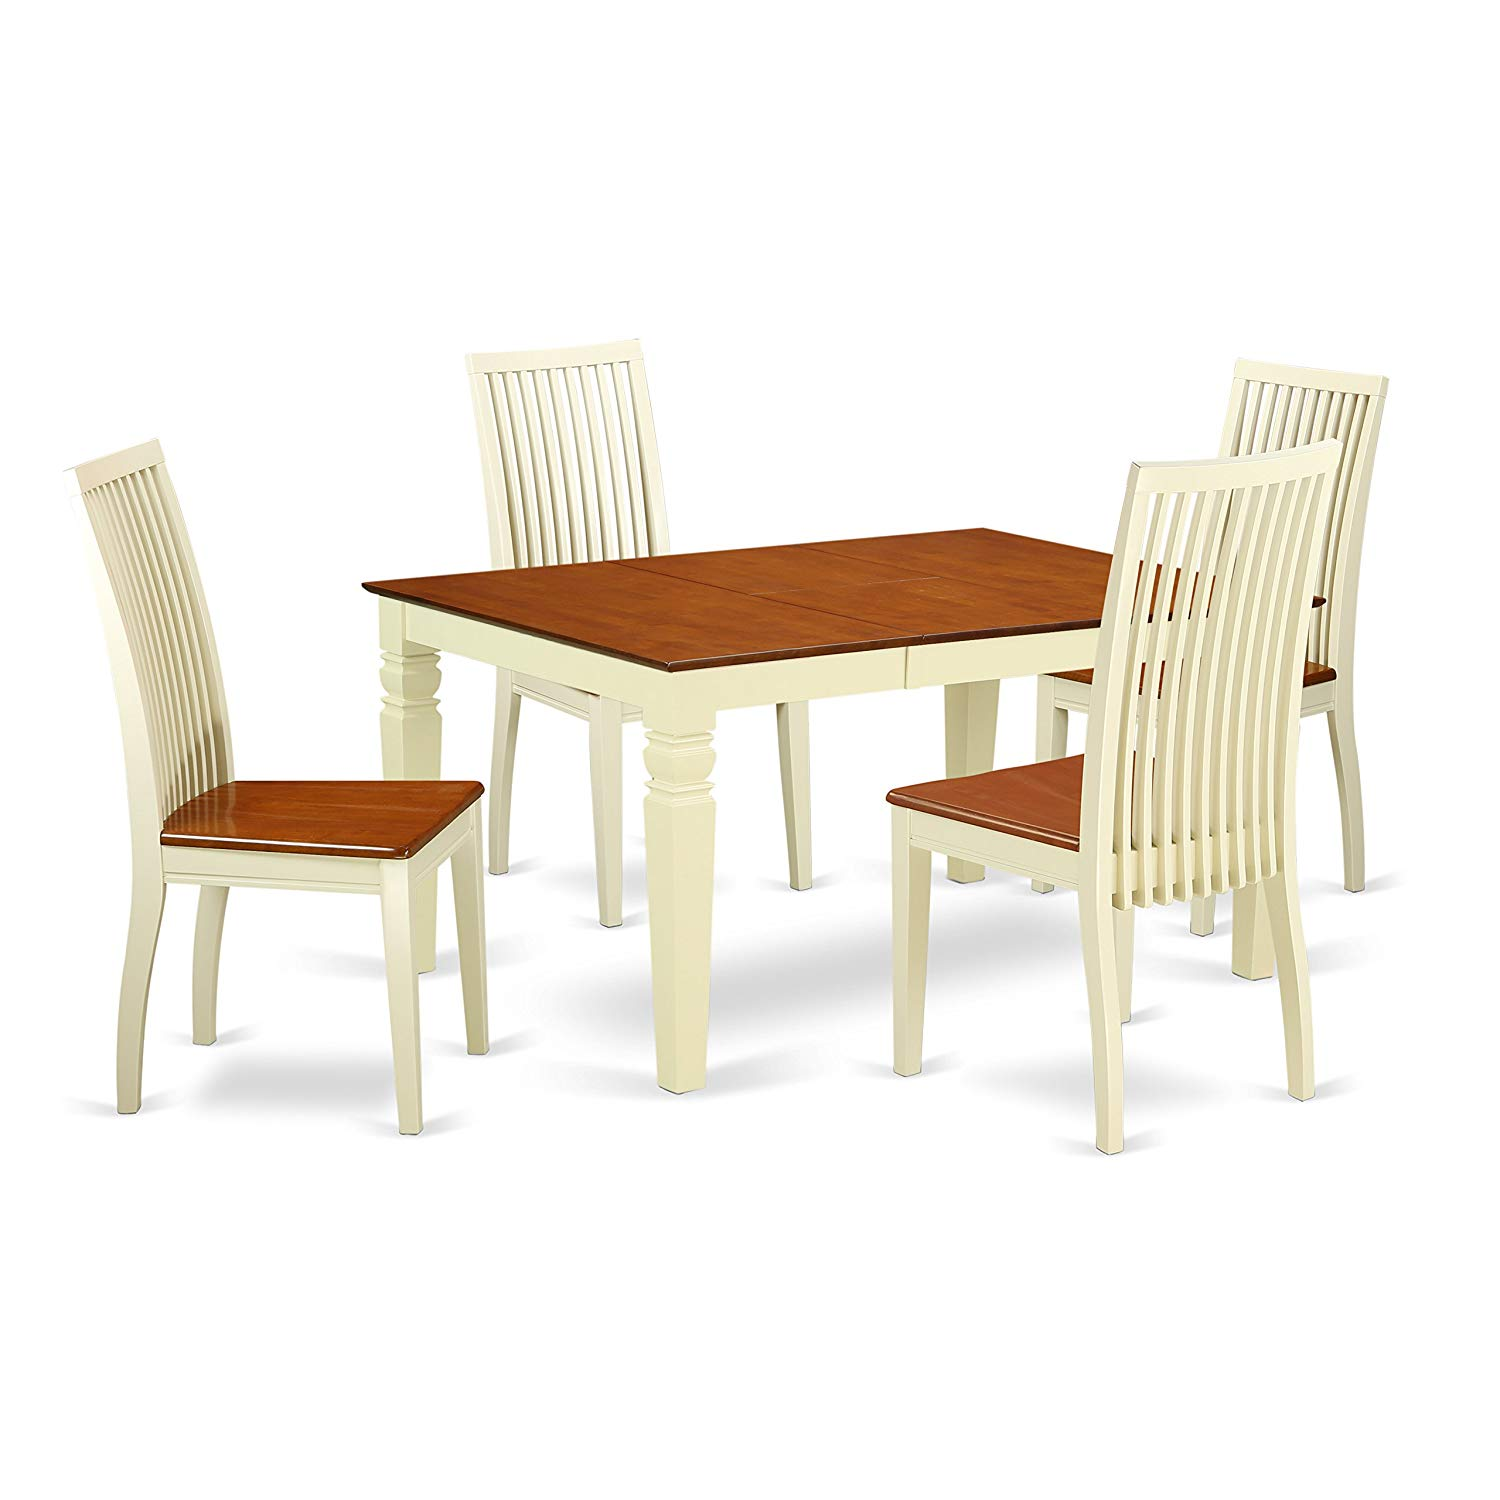 East West Furniture WEIP5-BMK-W 5 Piece Dinette Set with One Weston Dining Room Table & 4 Solid Wood Seat Chairs, Buttermilk/Cherry